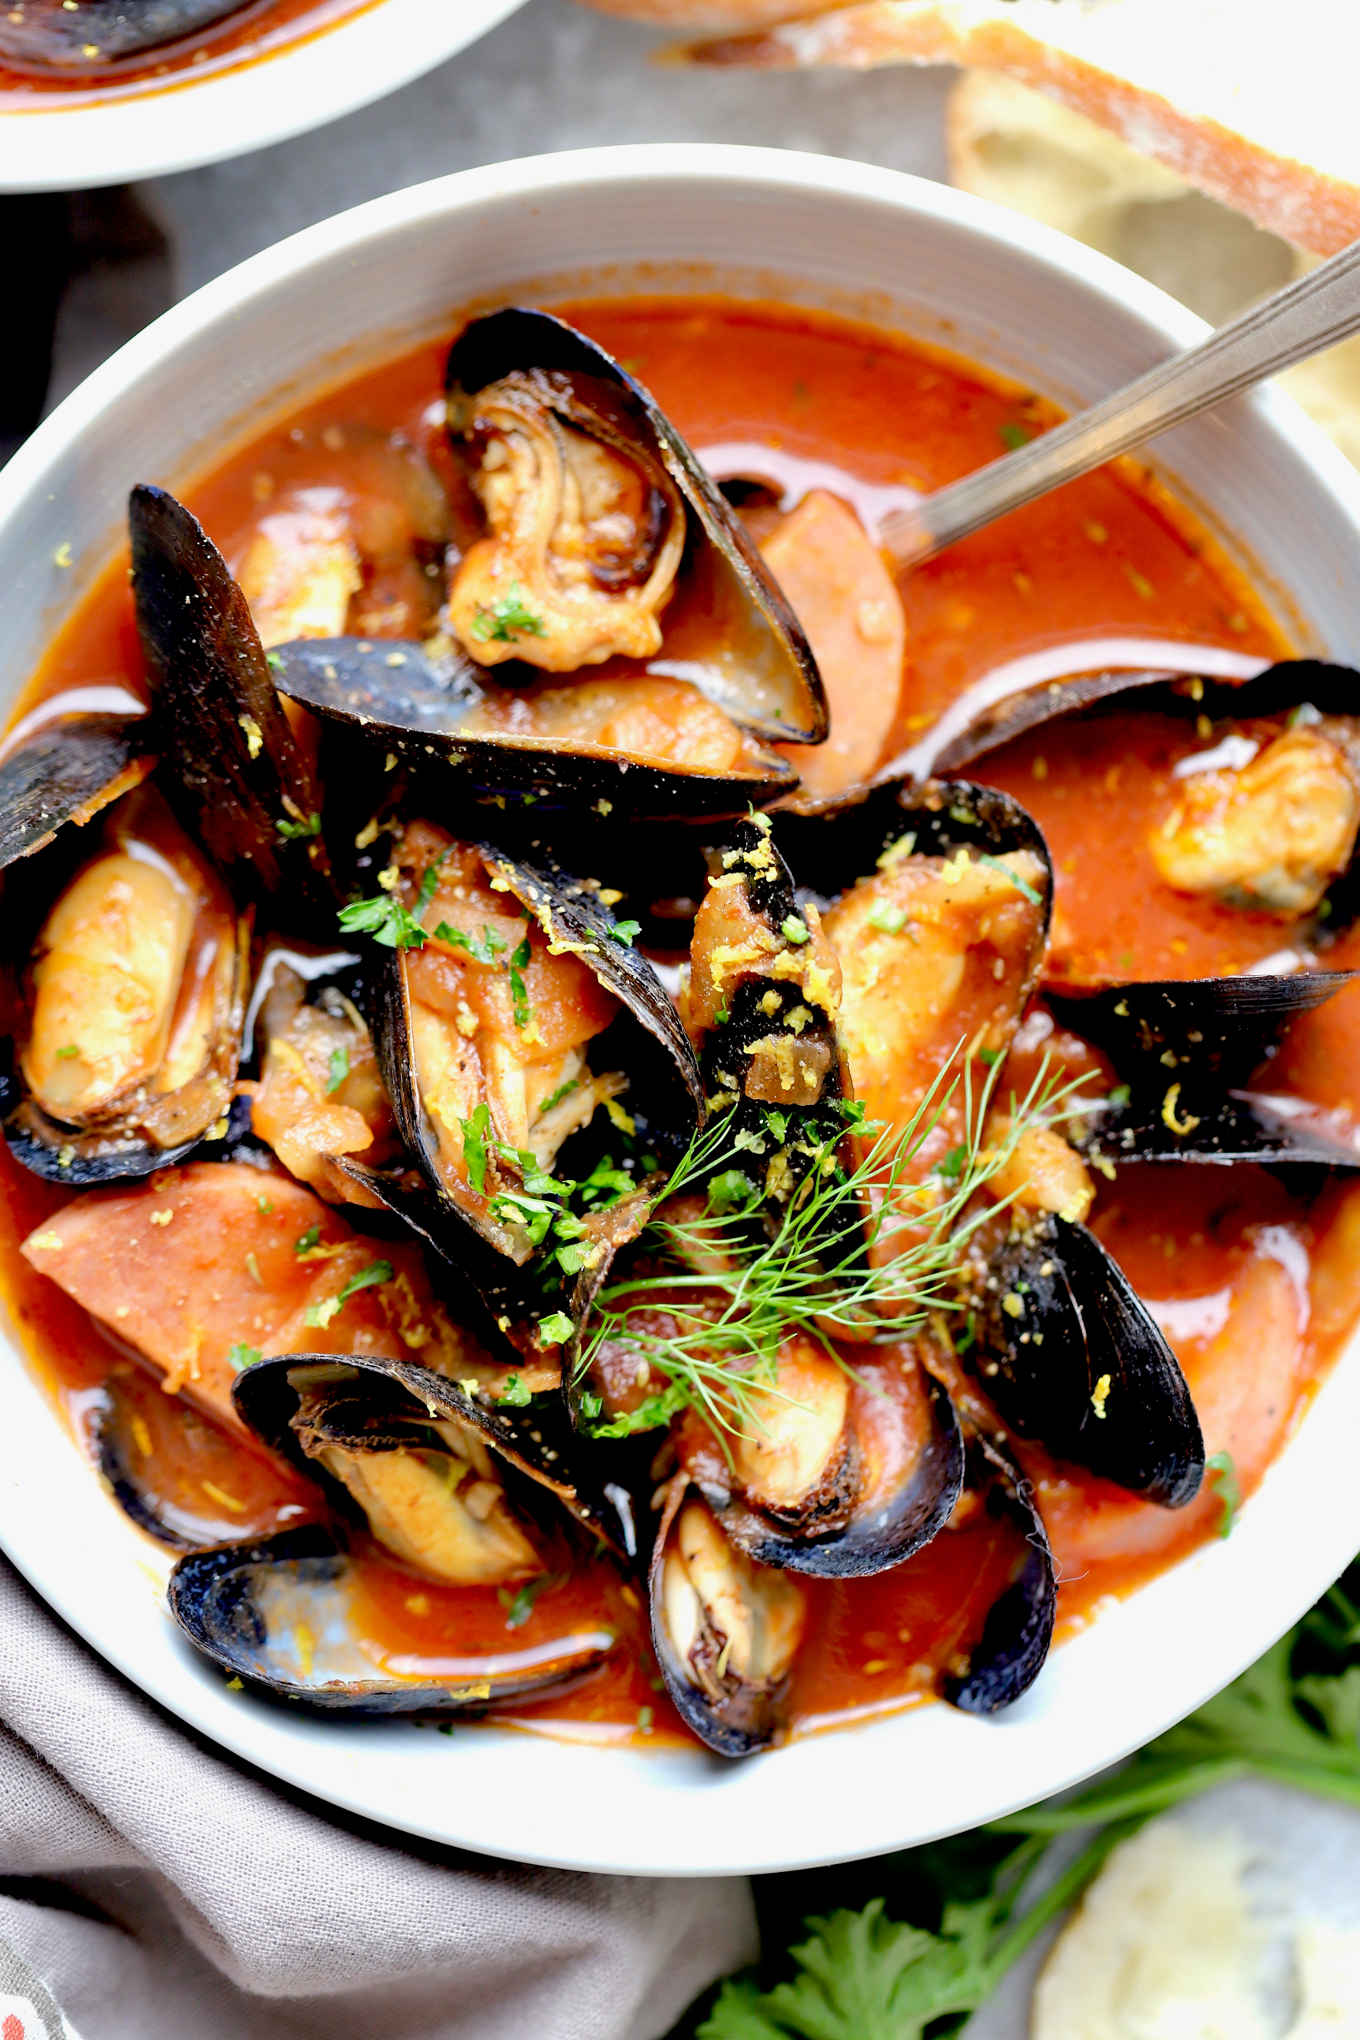 A closeup shot of sausage and mussels in tomato broth, topped with generous amount of fresh herbs and lemon zest.